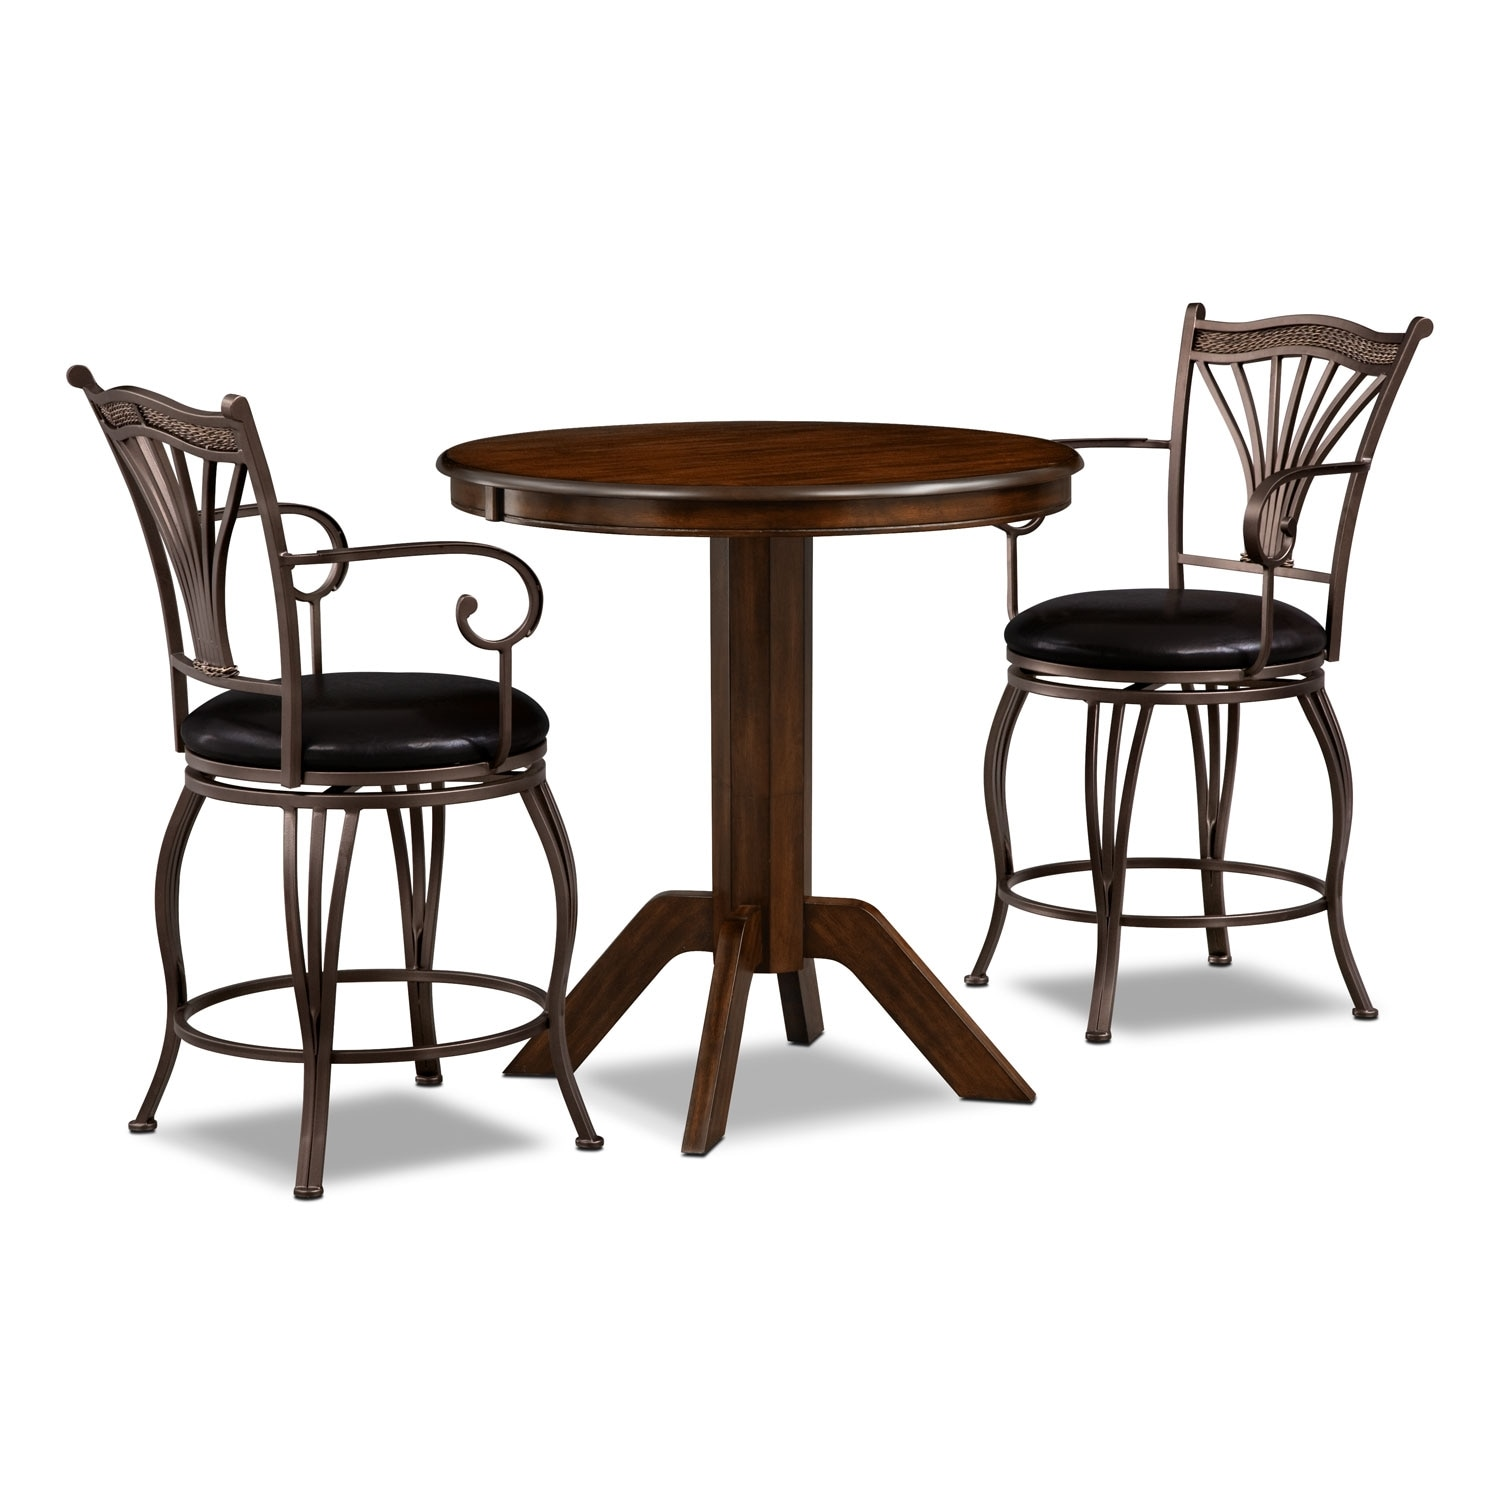 Dining Room Furniture - Concord Morgan 3 Pc. Counter-Height Dinette